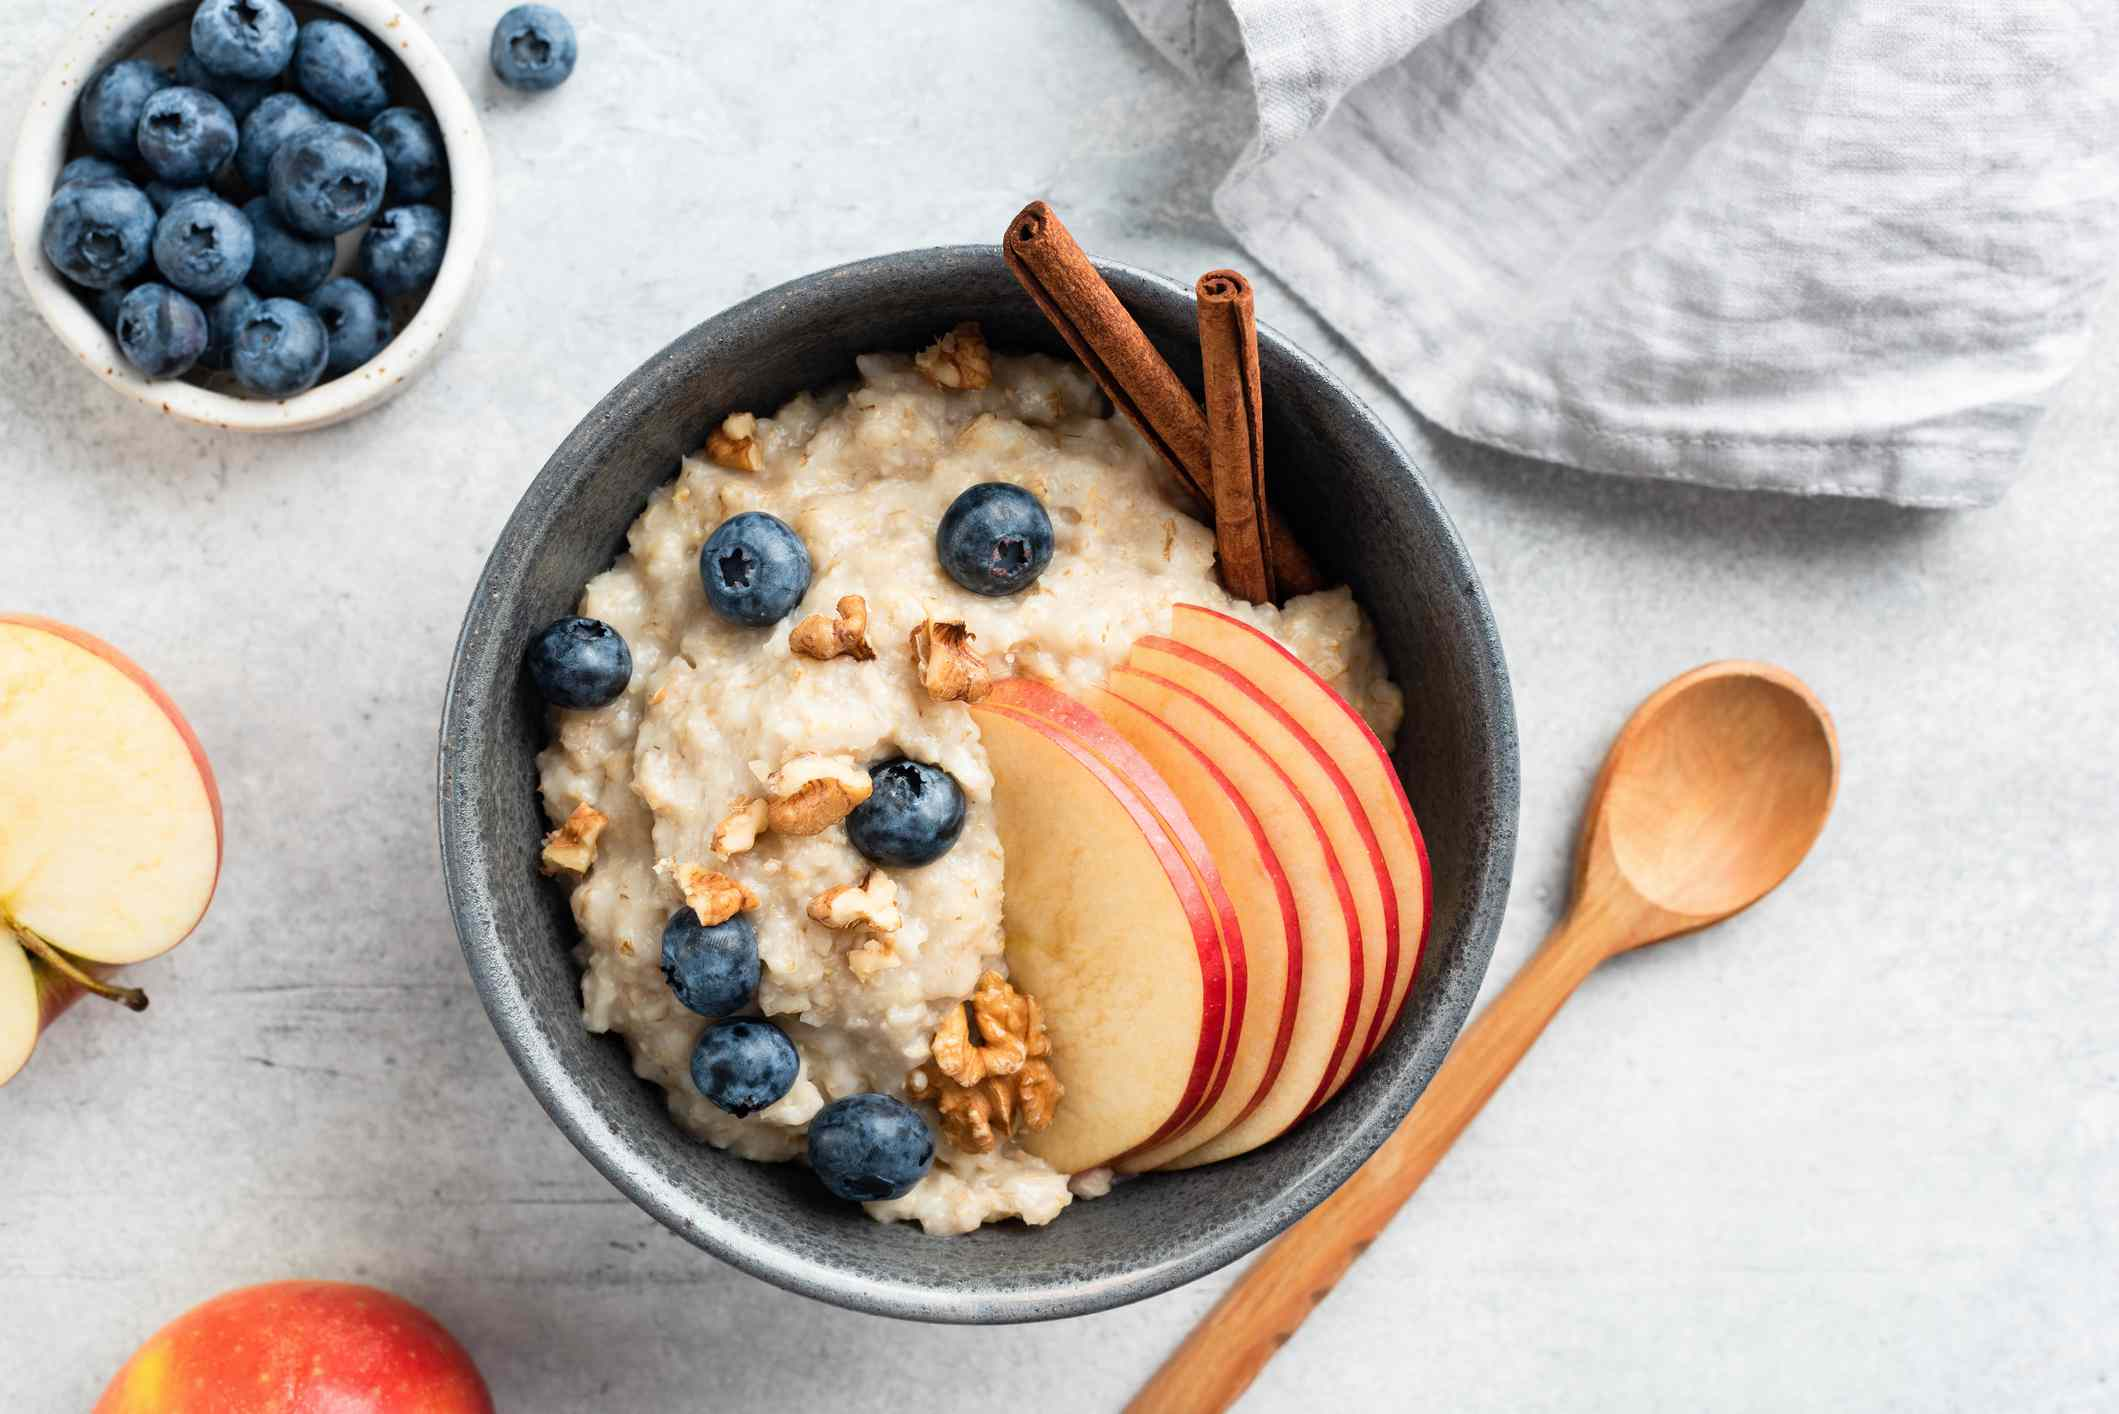 A bowl of oatmeal topped with apple, blueberries and nuts. Sitting on a counter beside a spoon, dish towel and fruit.